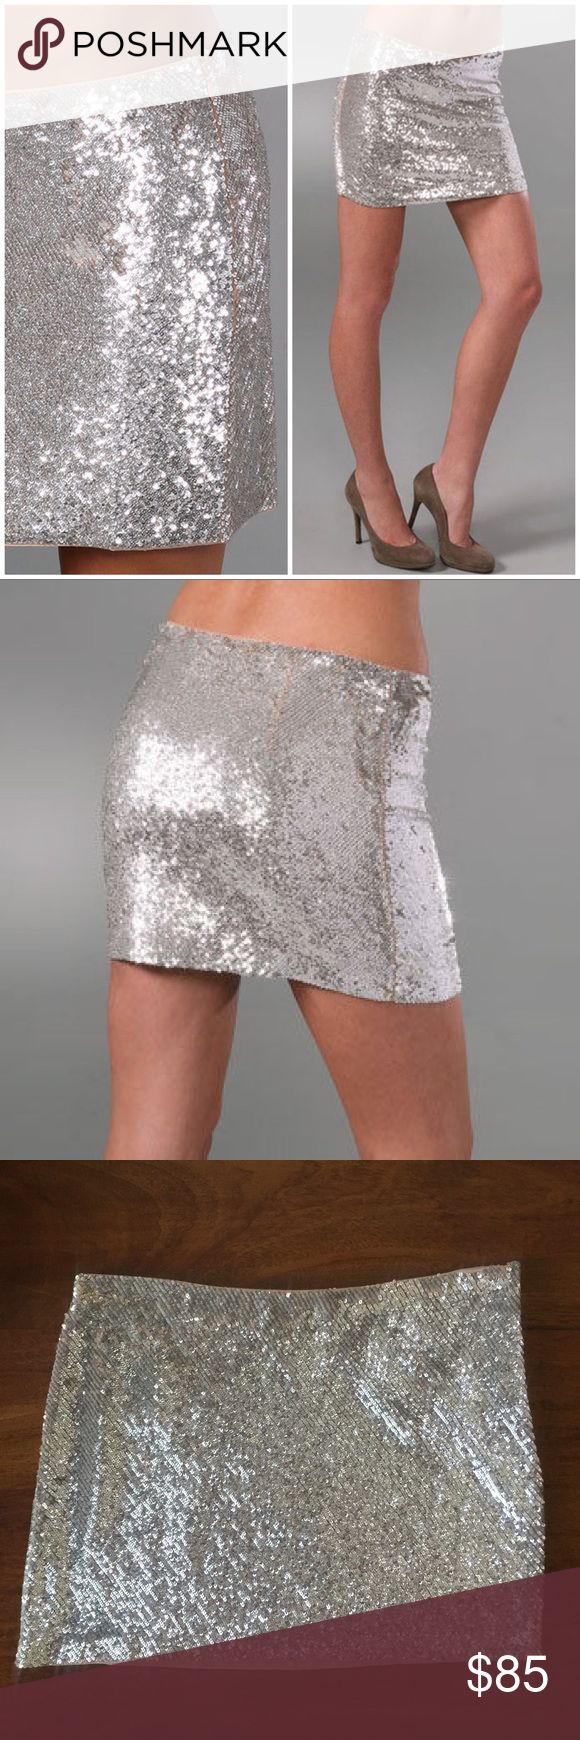 "Haute Hippie silver sequin mini skirt • nwot Super fun and sexy little silver sequined mini skirt by Haute Hippie. New without tags..does still have the extra sequins attached though. This bias-sequined silk-chiffon miniskirt features a hidden side zip. Lined. Size: XS Color: Metallic Silver w/nude lining          13"" long, 15"" across waist  100% silk Dry clean Imported Retail $295 Haute Hippie Skirts Mini"